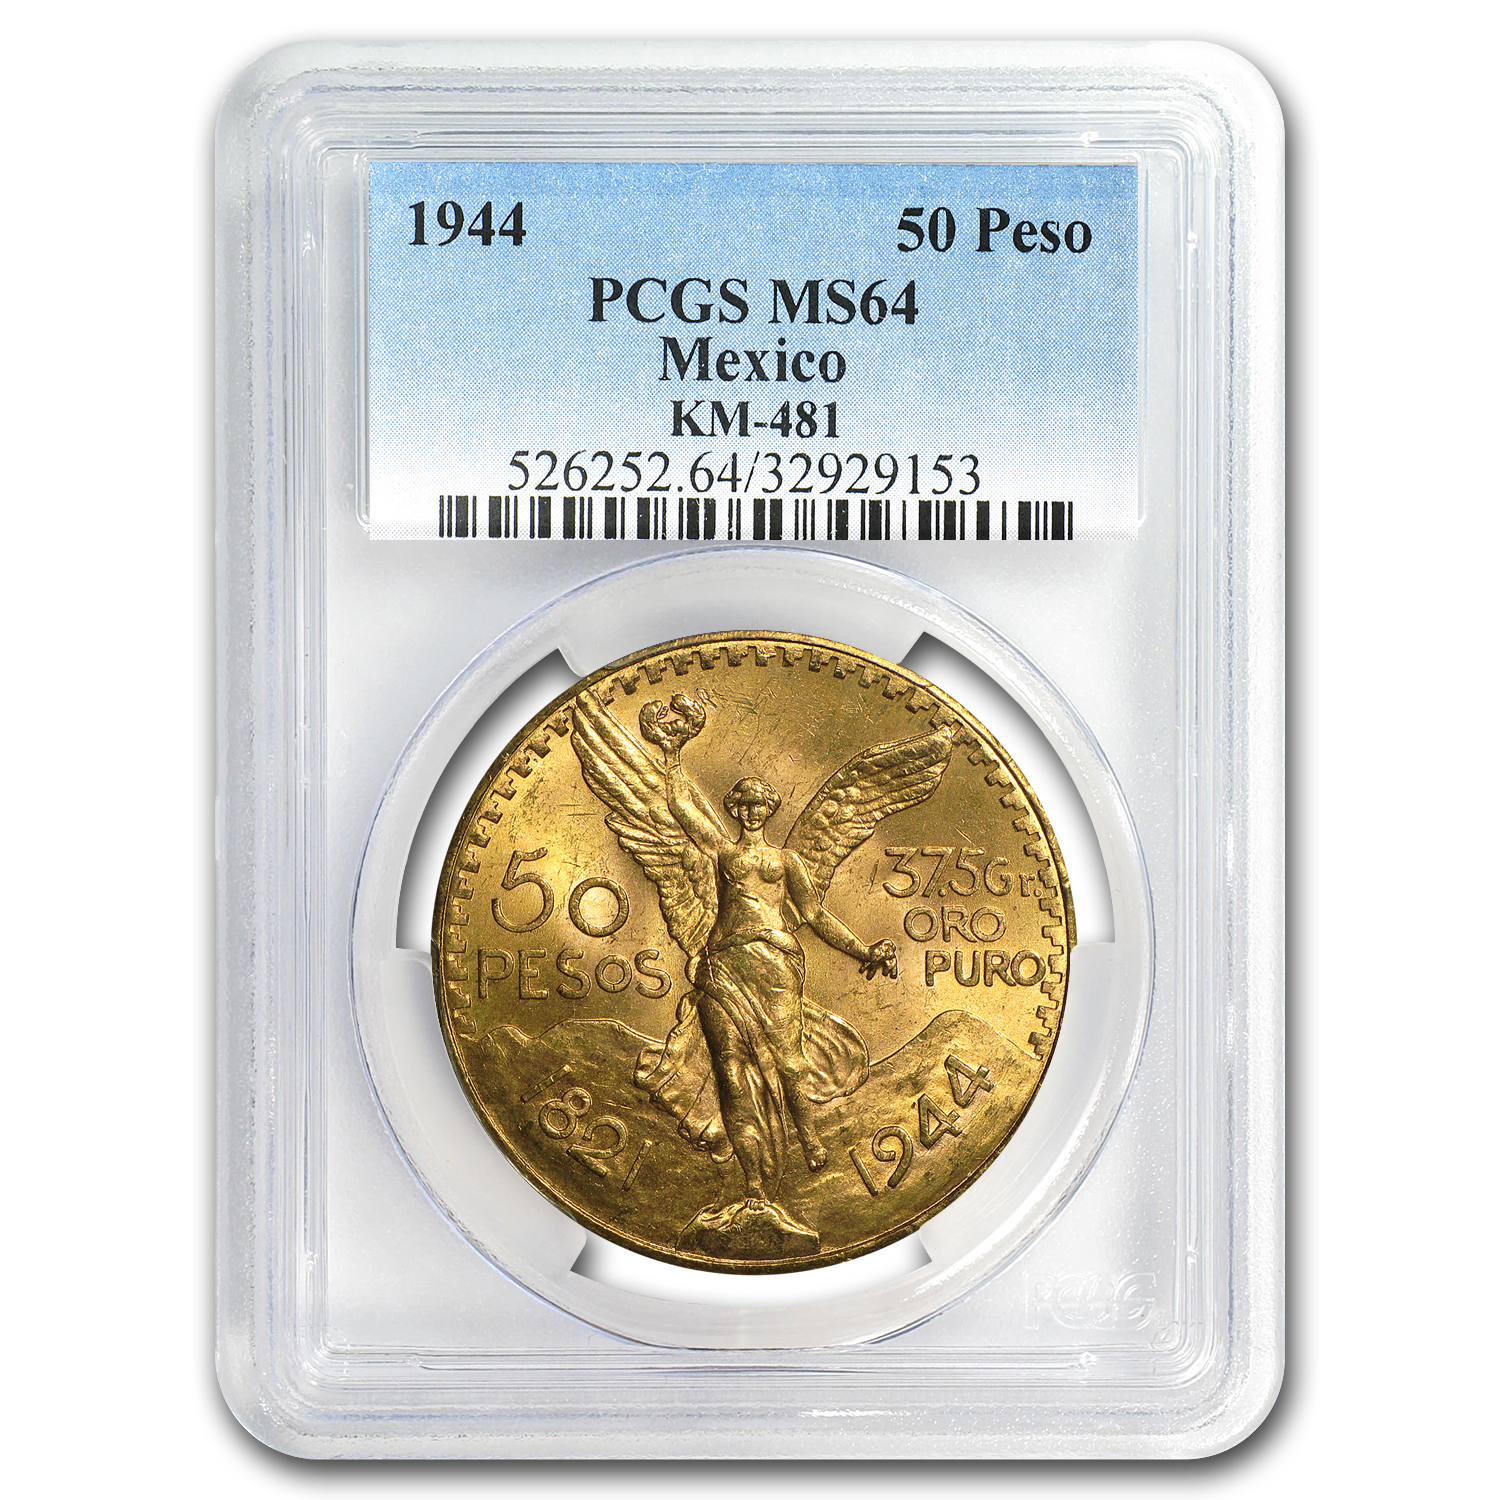 Mexico 1944 50 Pesos Gold Coin - MS-64 PCGS